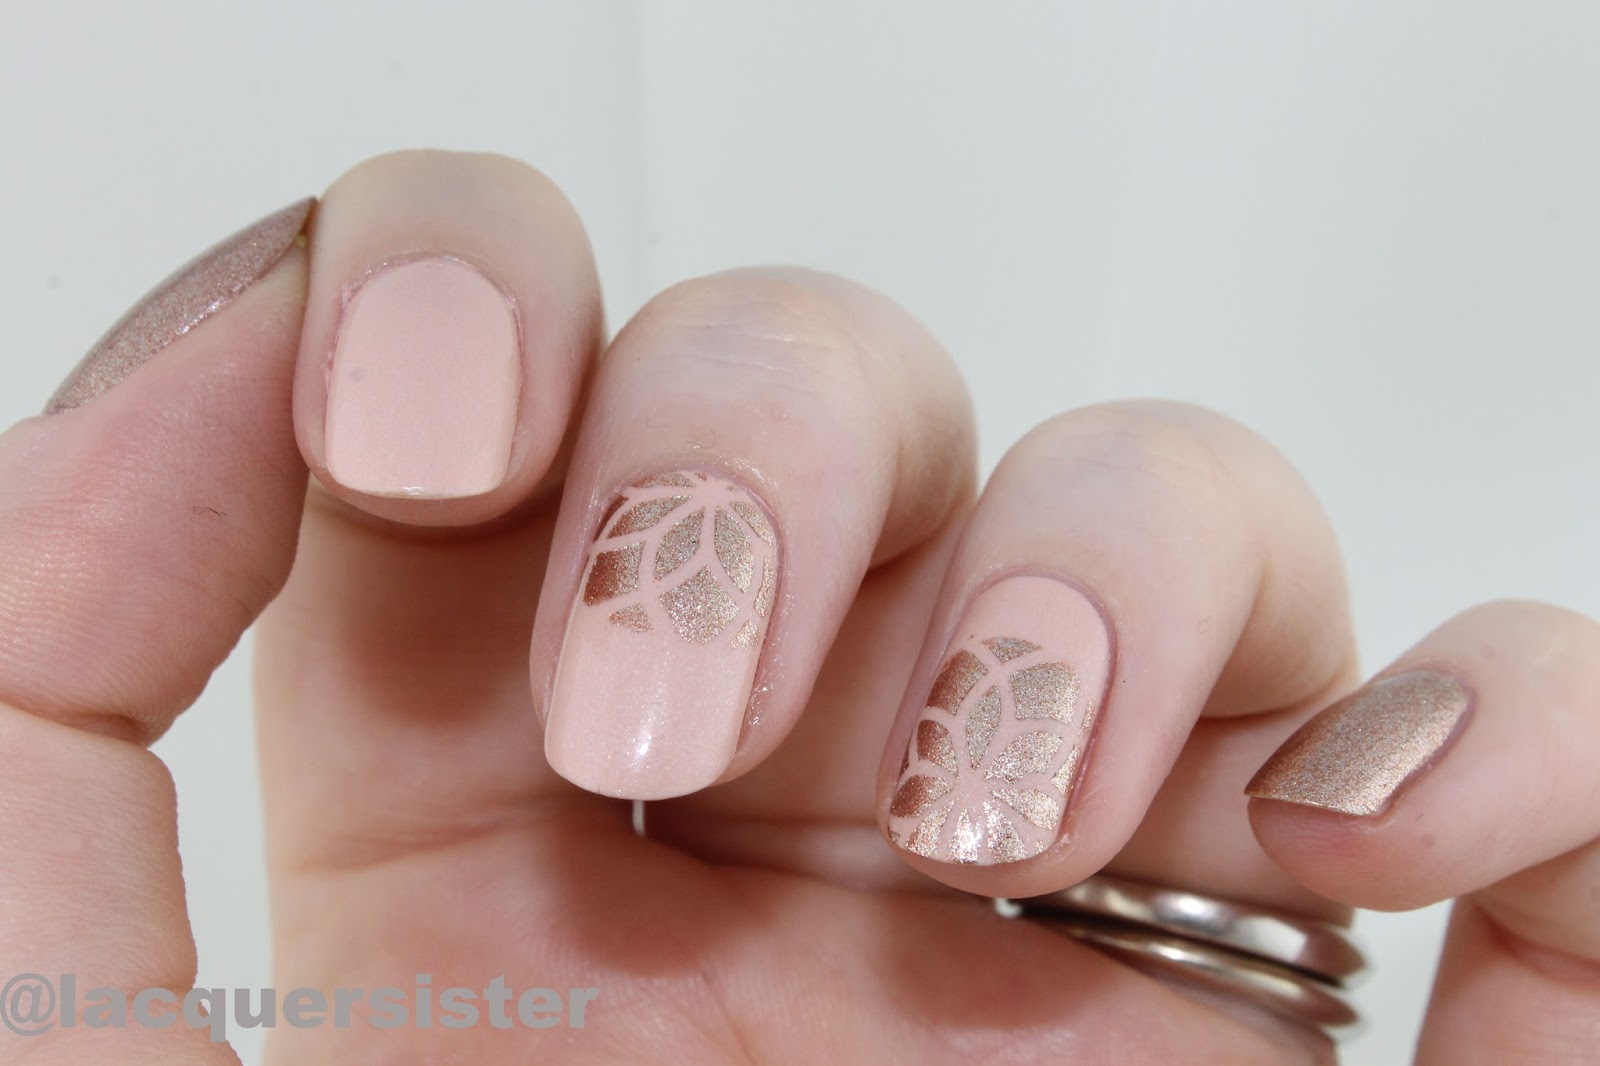 Lacquer Sister: Sinful Shine King Kylie nails